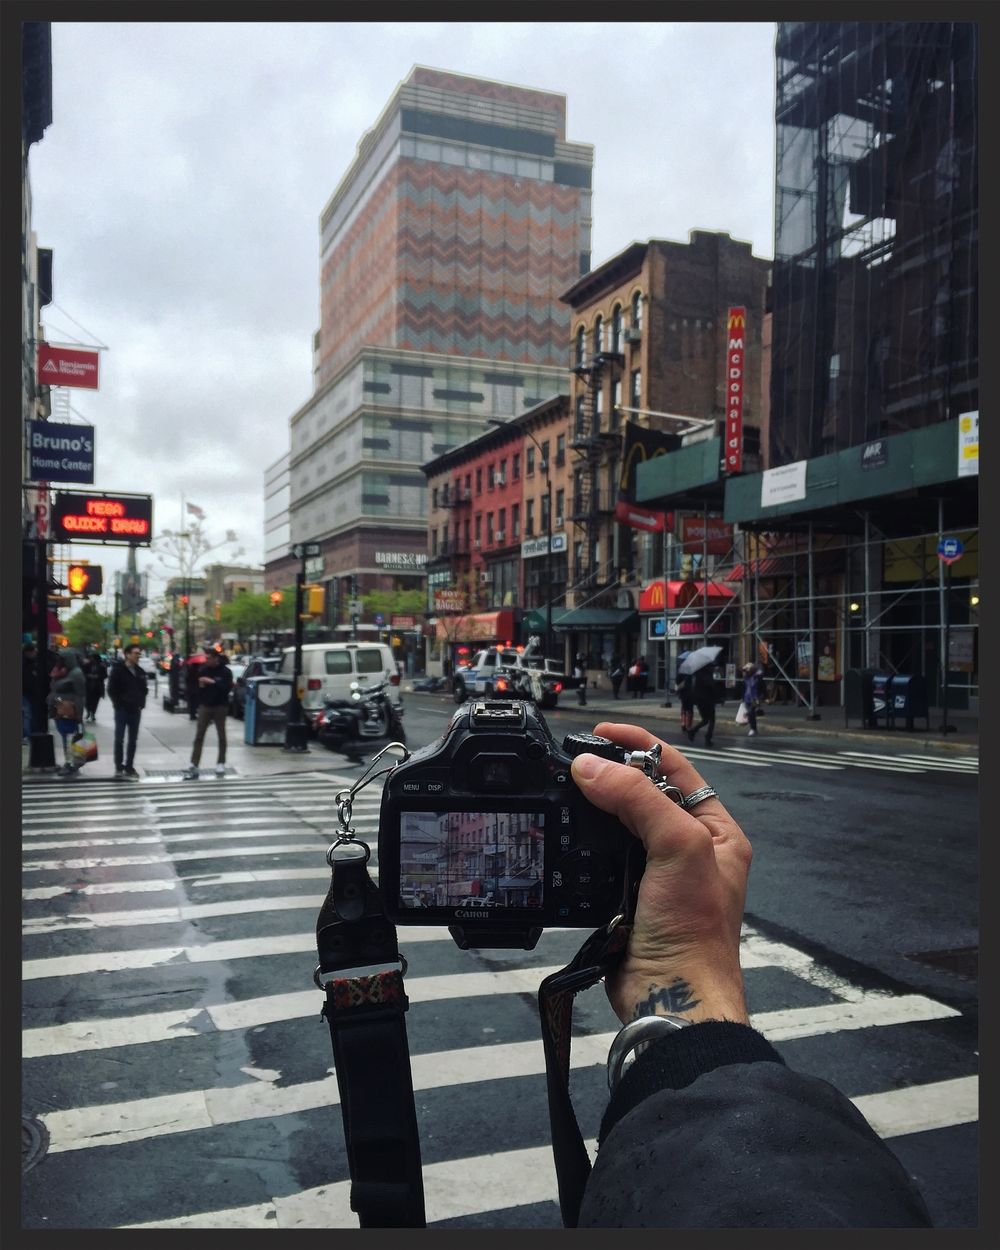 Rainy Street Photography session in Brooklyn before heading home for some editing. How are you today folks? Get ready for tomorrow, I have the feeling that it will be a very interesting day!  02|04|2016